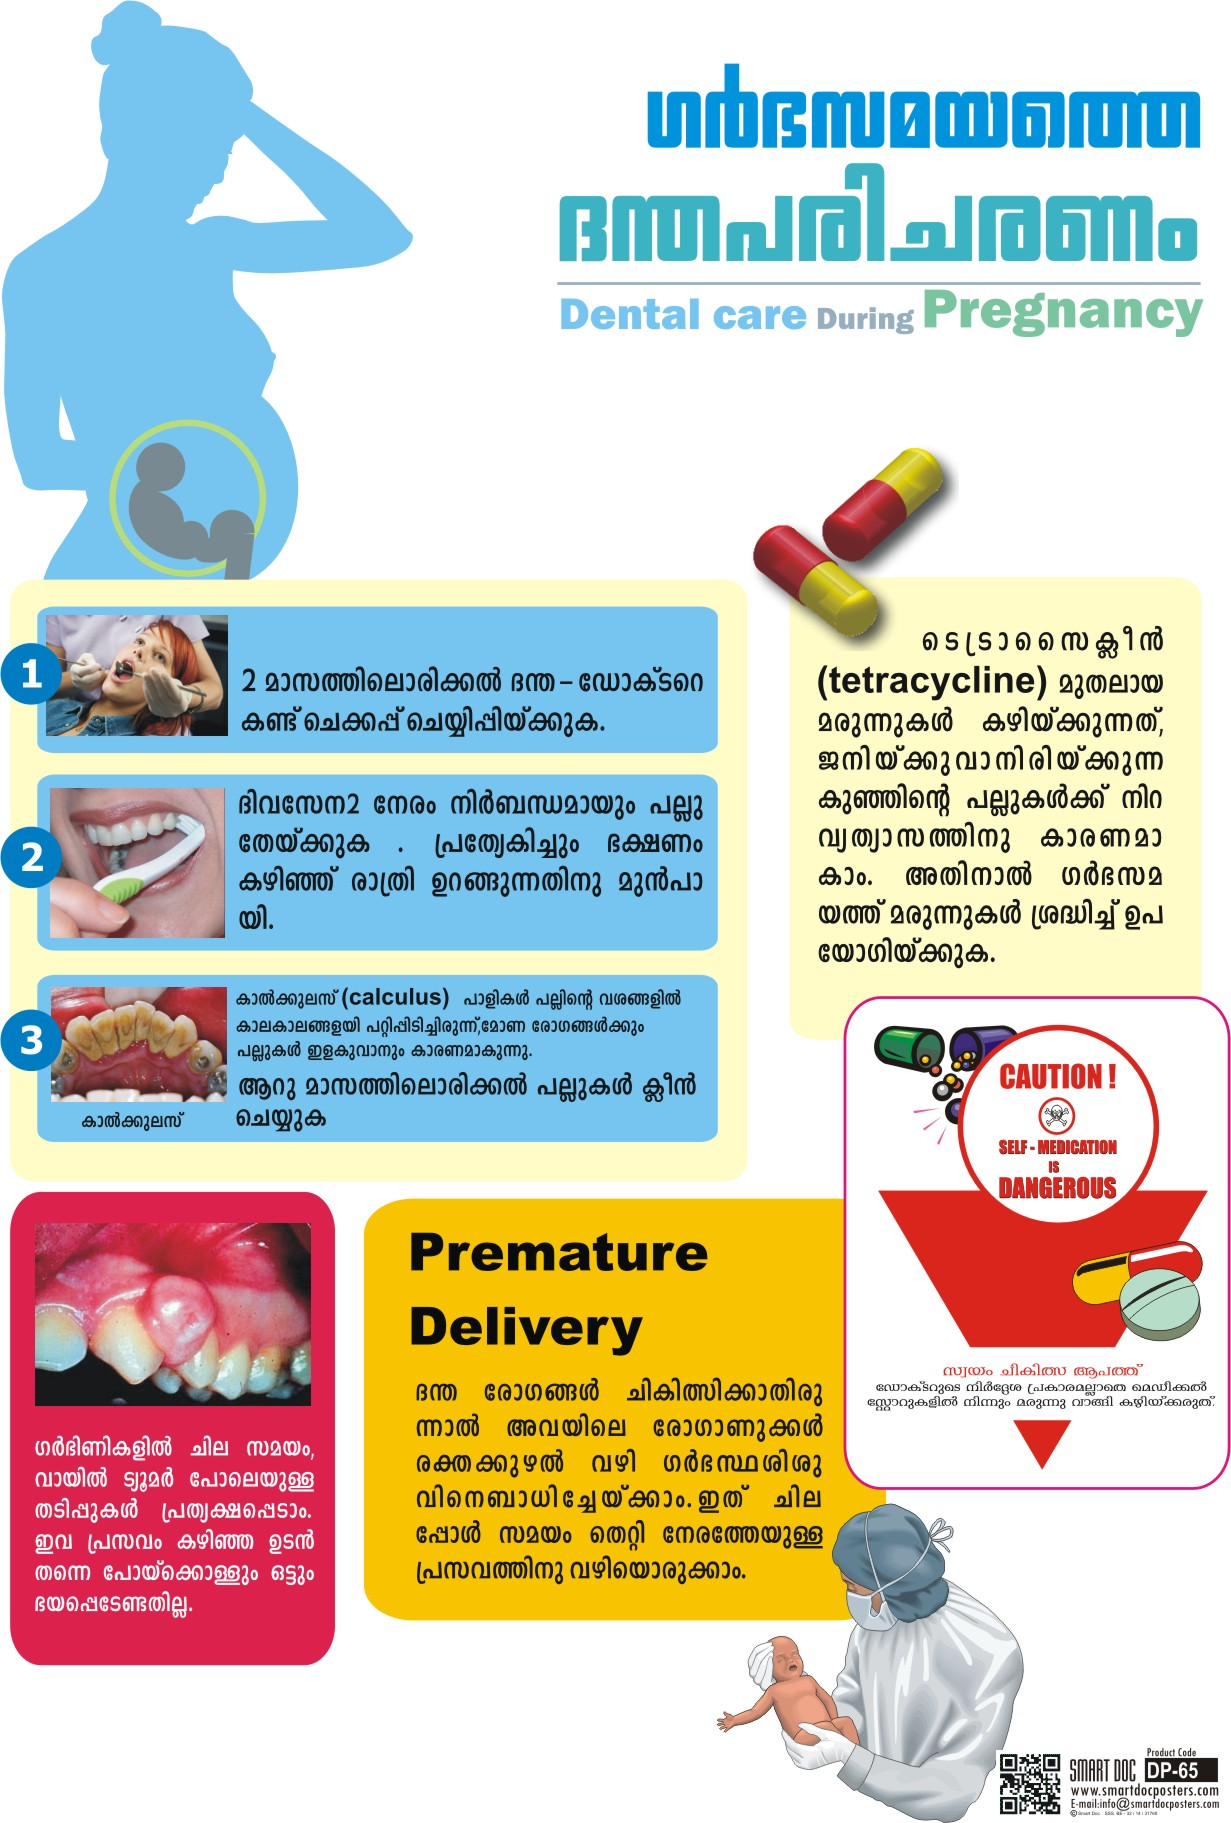 dental care during pregnancy malayalam dp 65 m smart doc posters rh smartdocposters com Pregnancy Food Plan pregnancy food guide in malayalam pdf